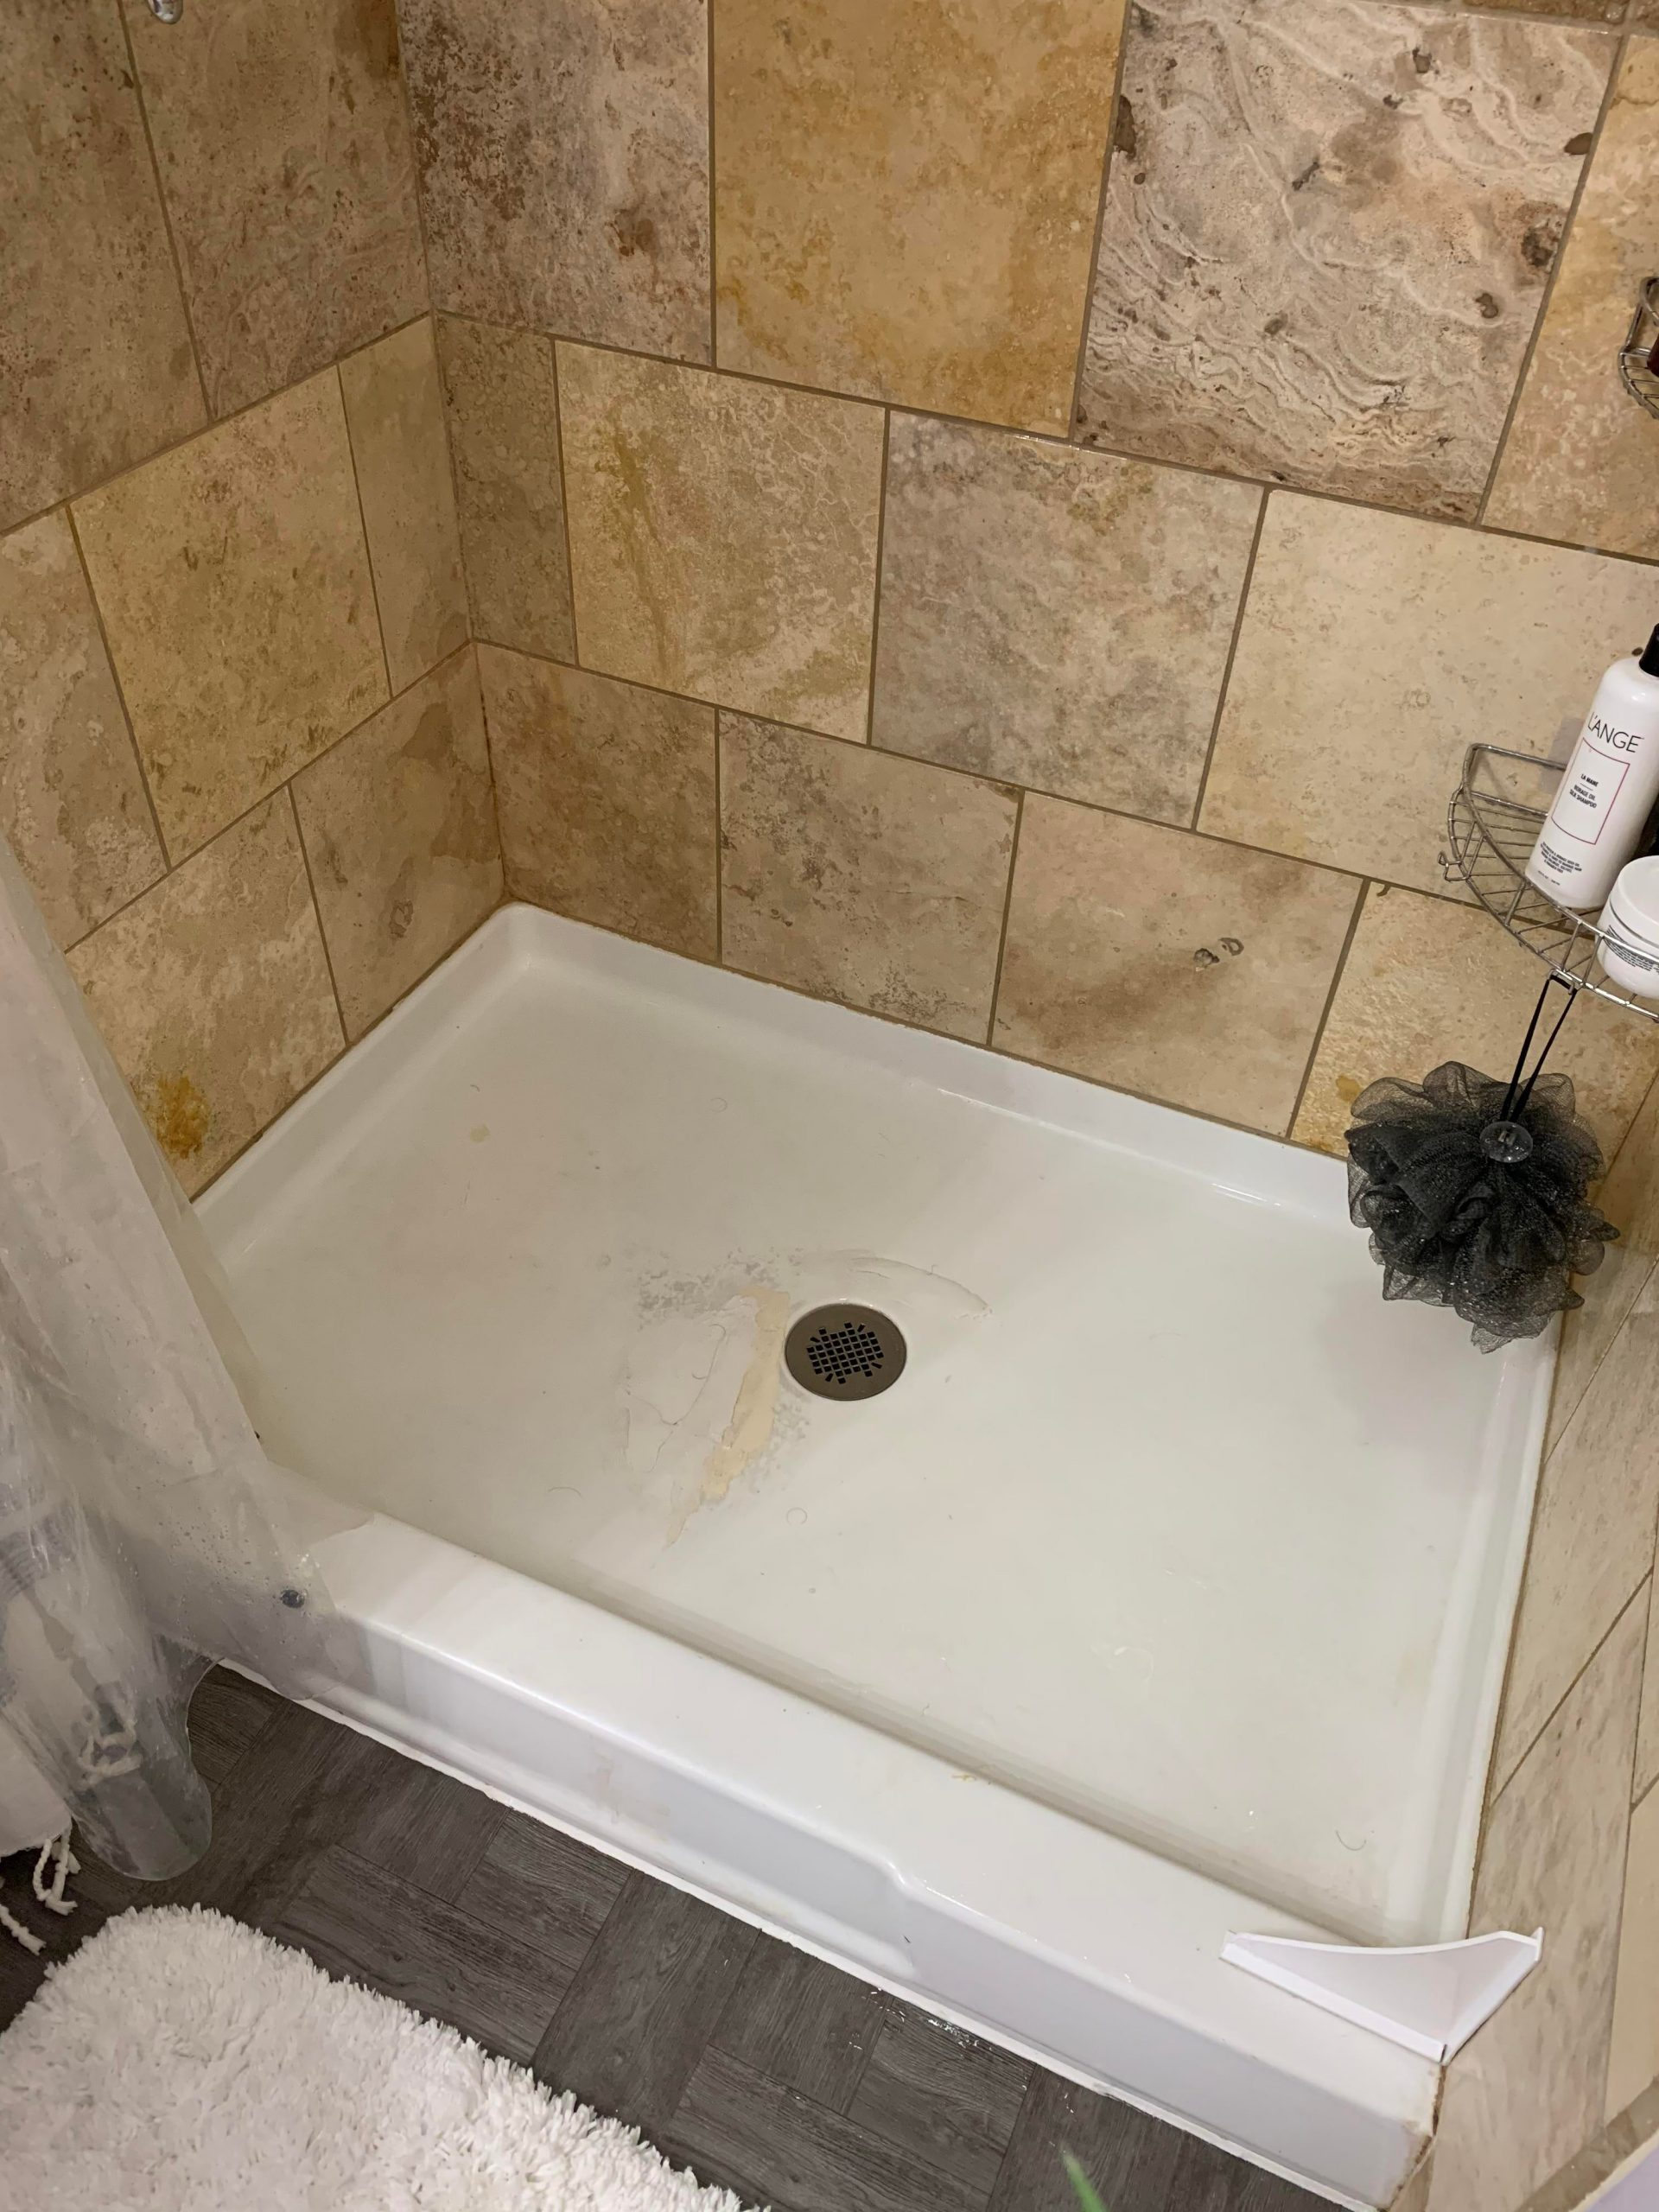 27dweo3uyug51 scaled - How to replace this shower pan? - home, hobbies